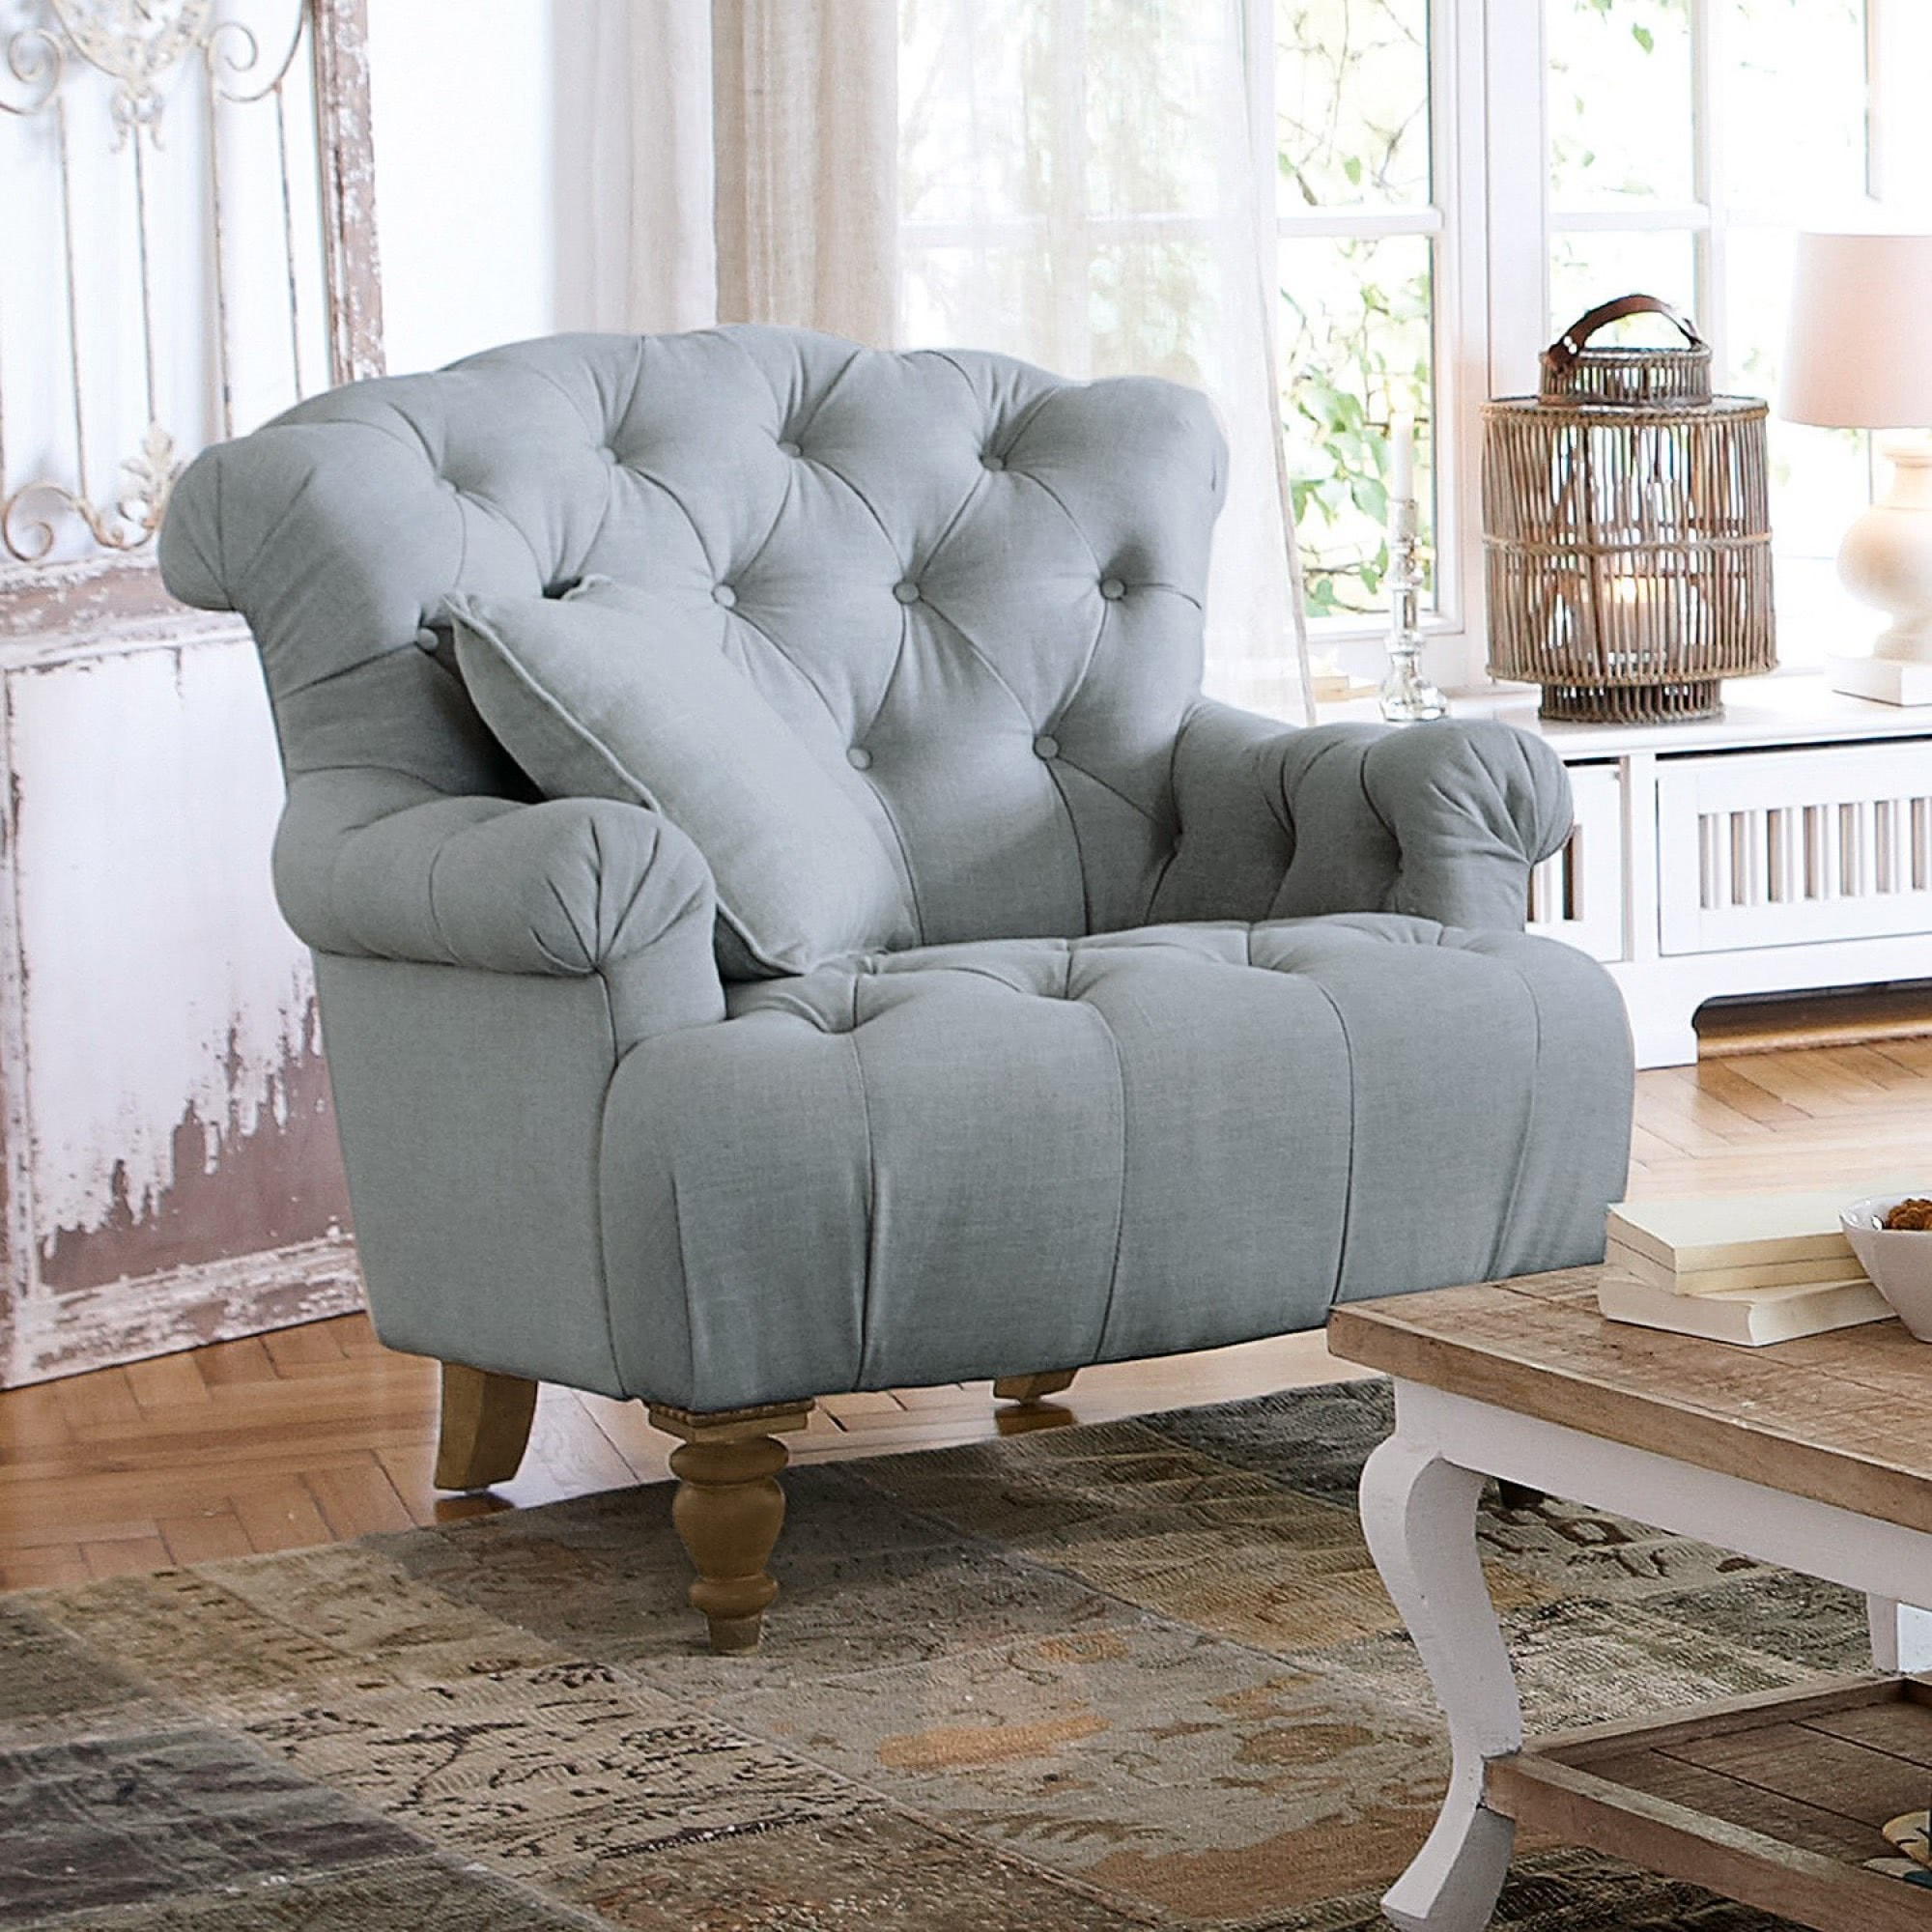 Loveseat sessel xxl  Sessel